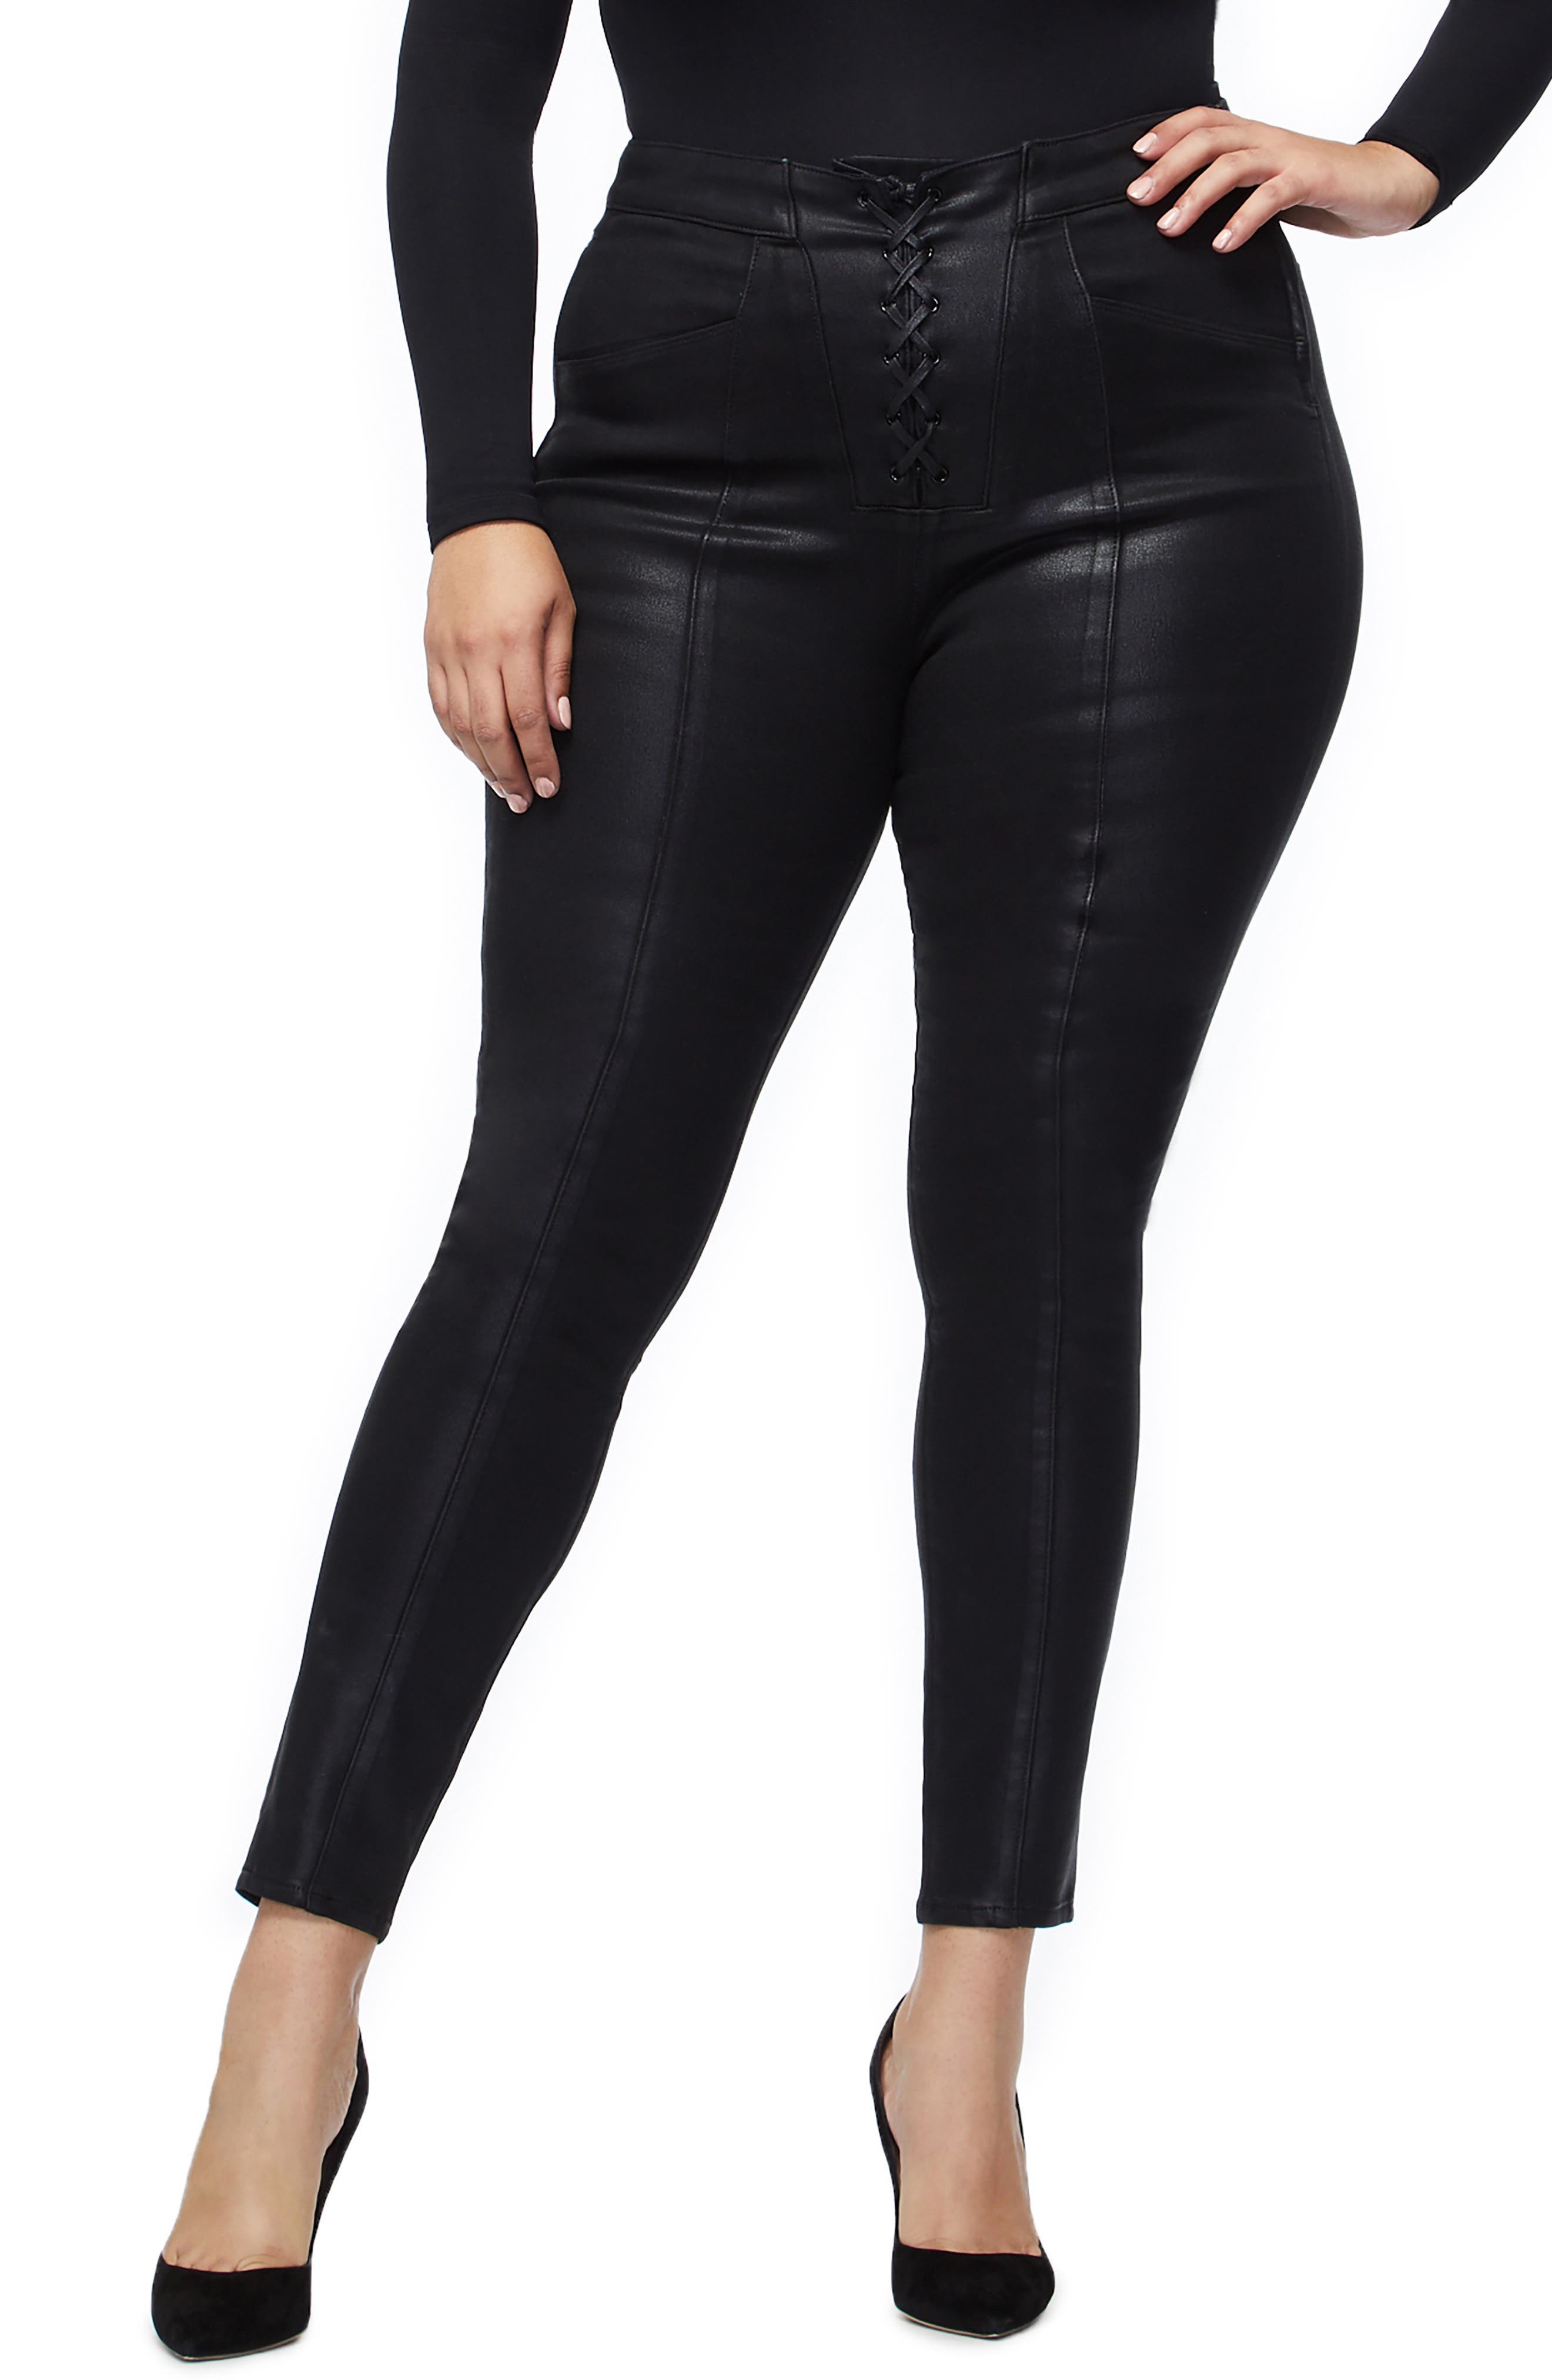 GOOD AMERICAN, Coated Lace-Up High Waist Skinny Jeans, Alternate thumbnail 2, color, BLACK034